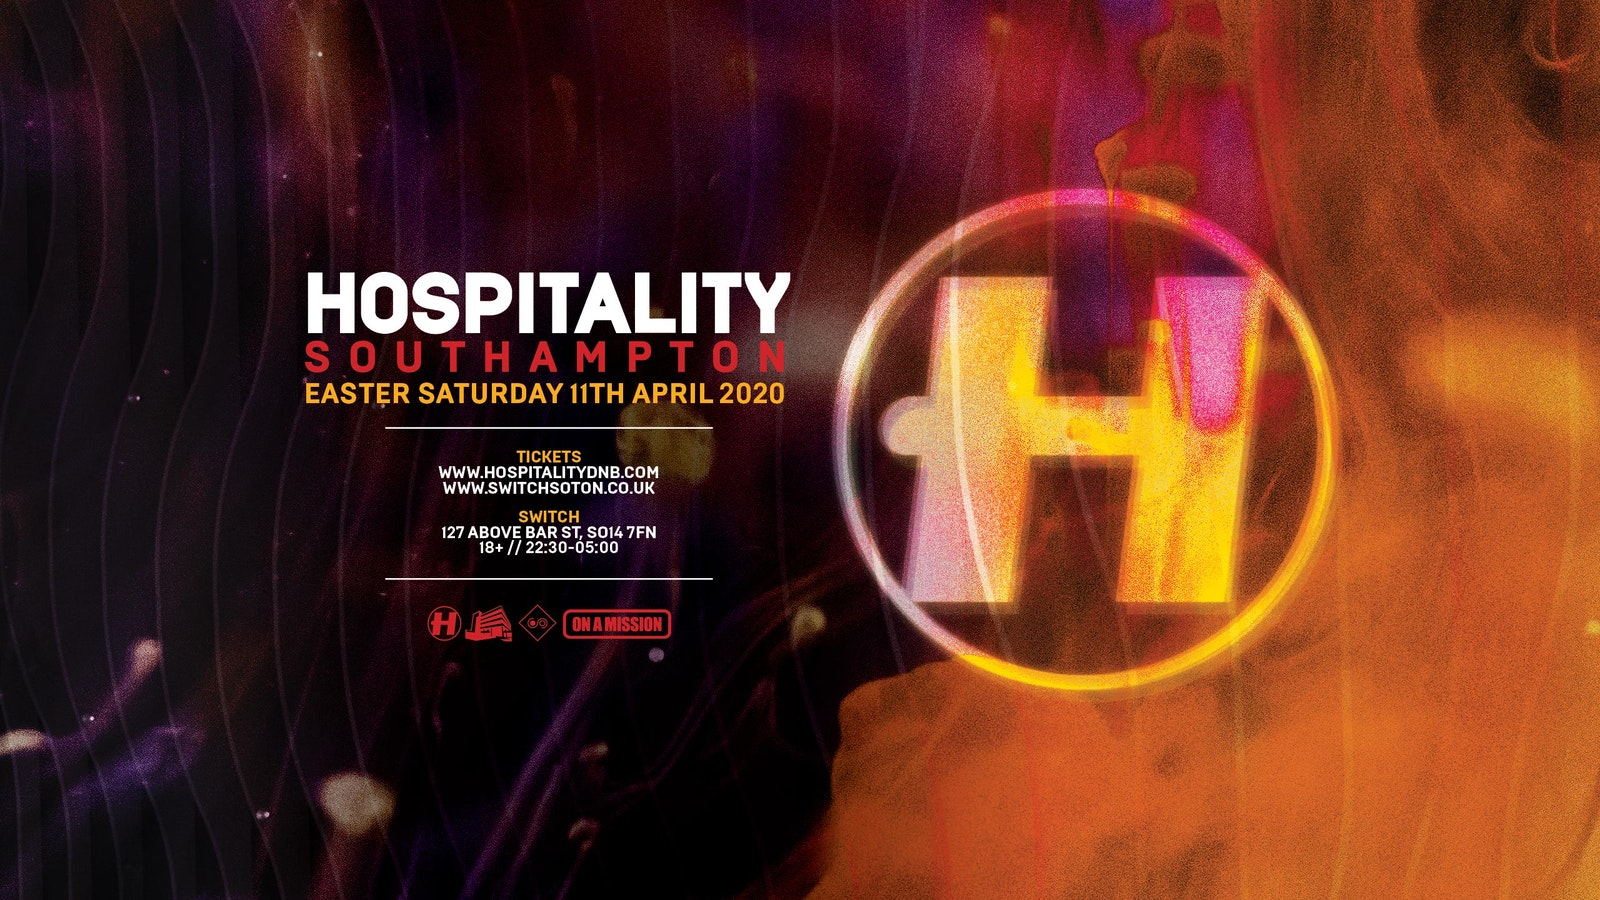 Hospitality Southampton – cancelled please see event info